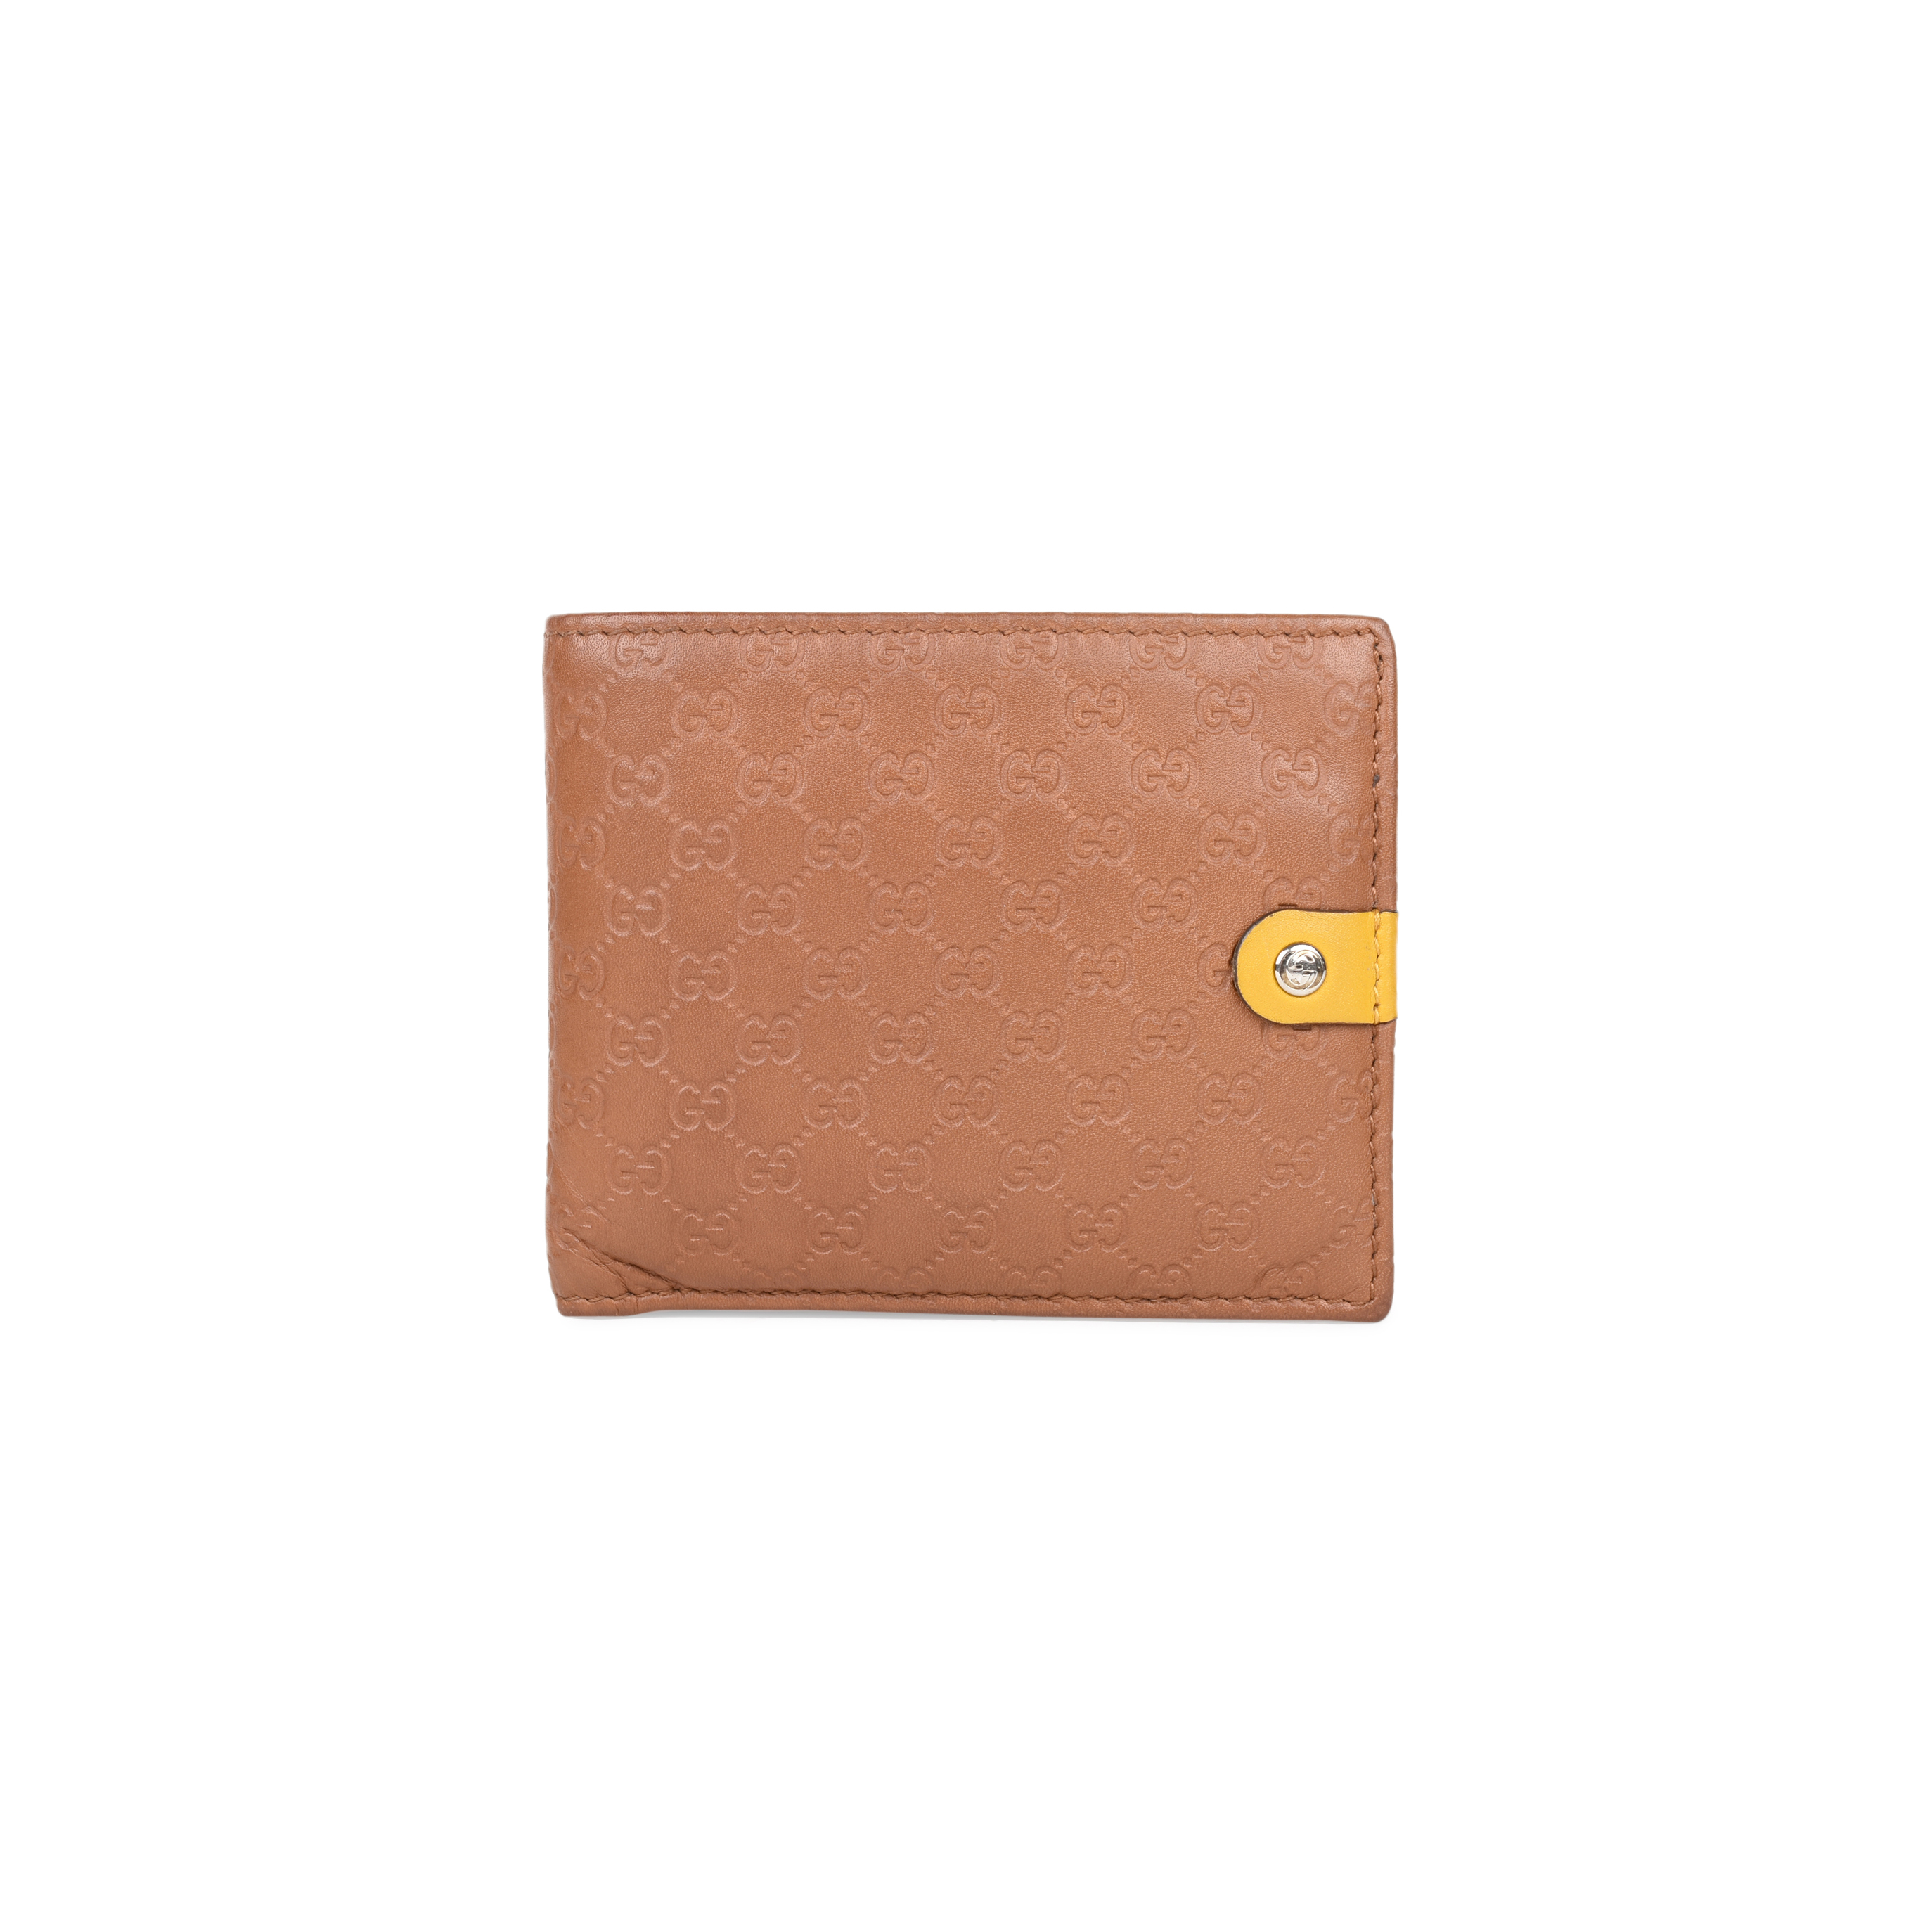 7d394fdb7f8d Authentic Second Hand Gucci Microguccissima Leather Wallet (PSS-394-00023)  | THE FIFTH COLLECTION